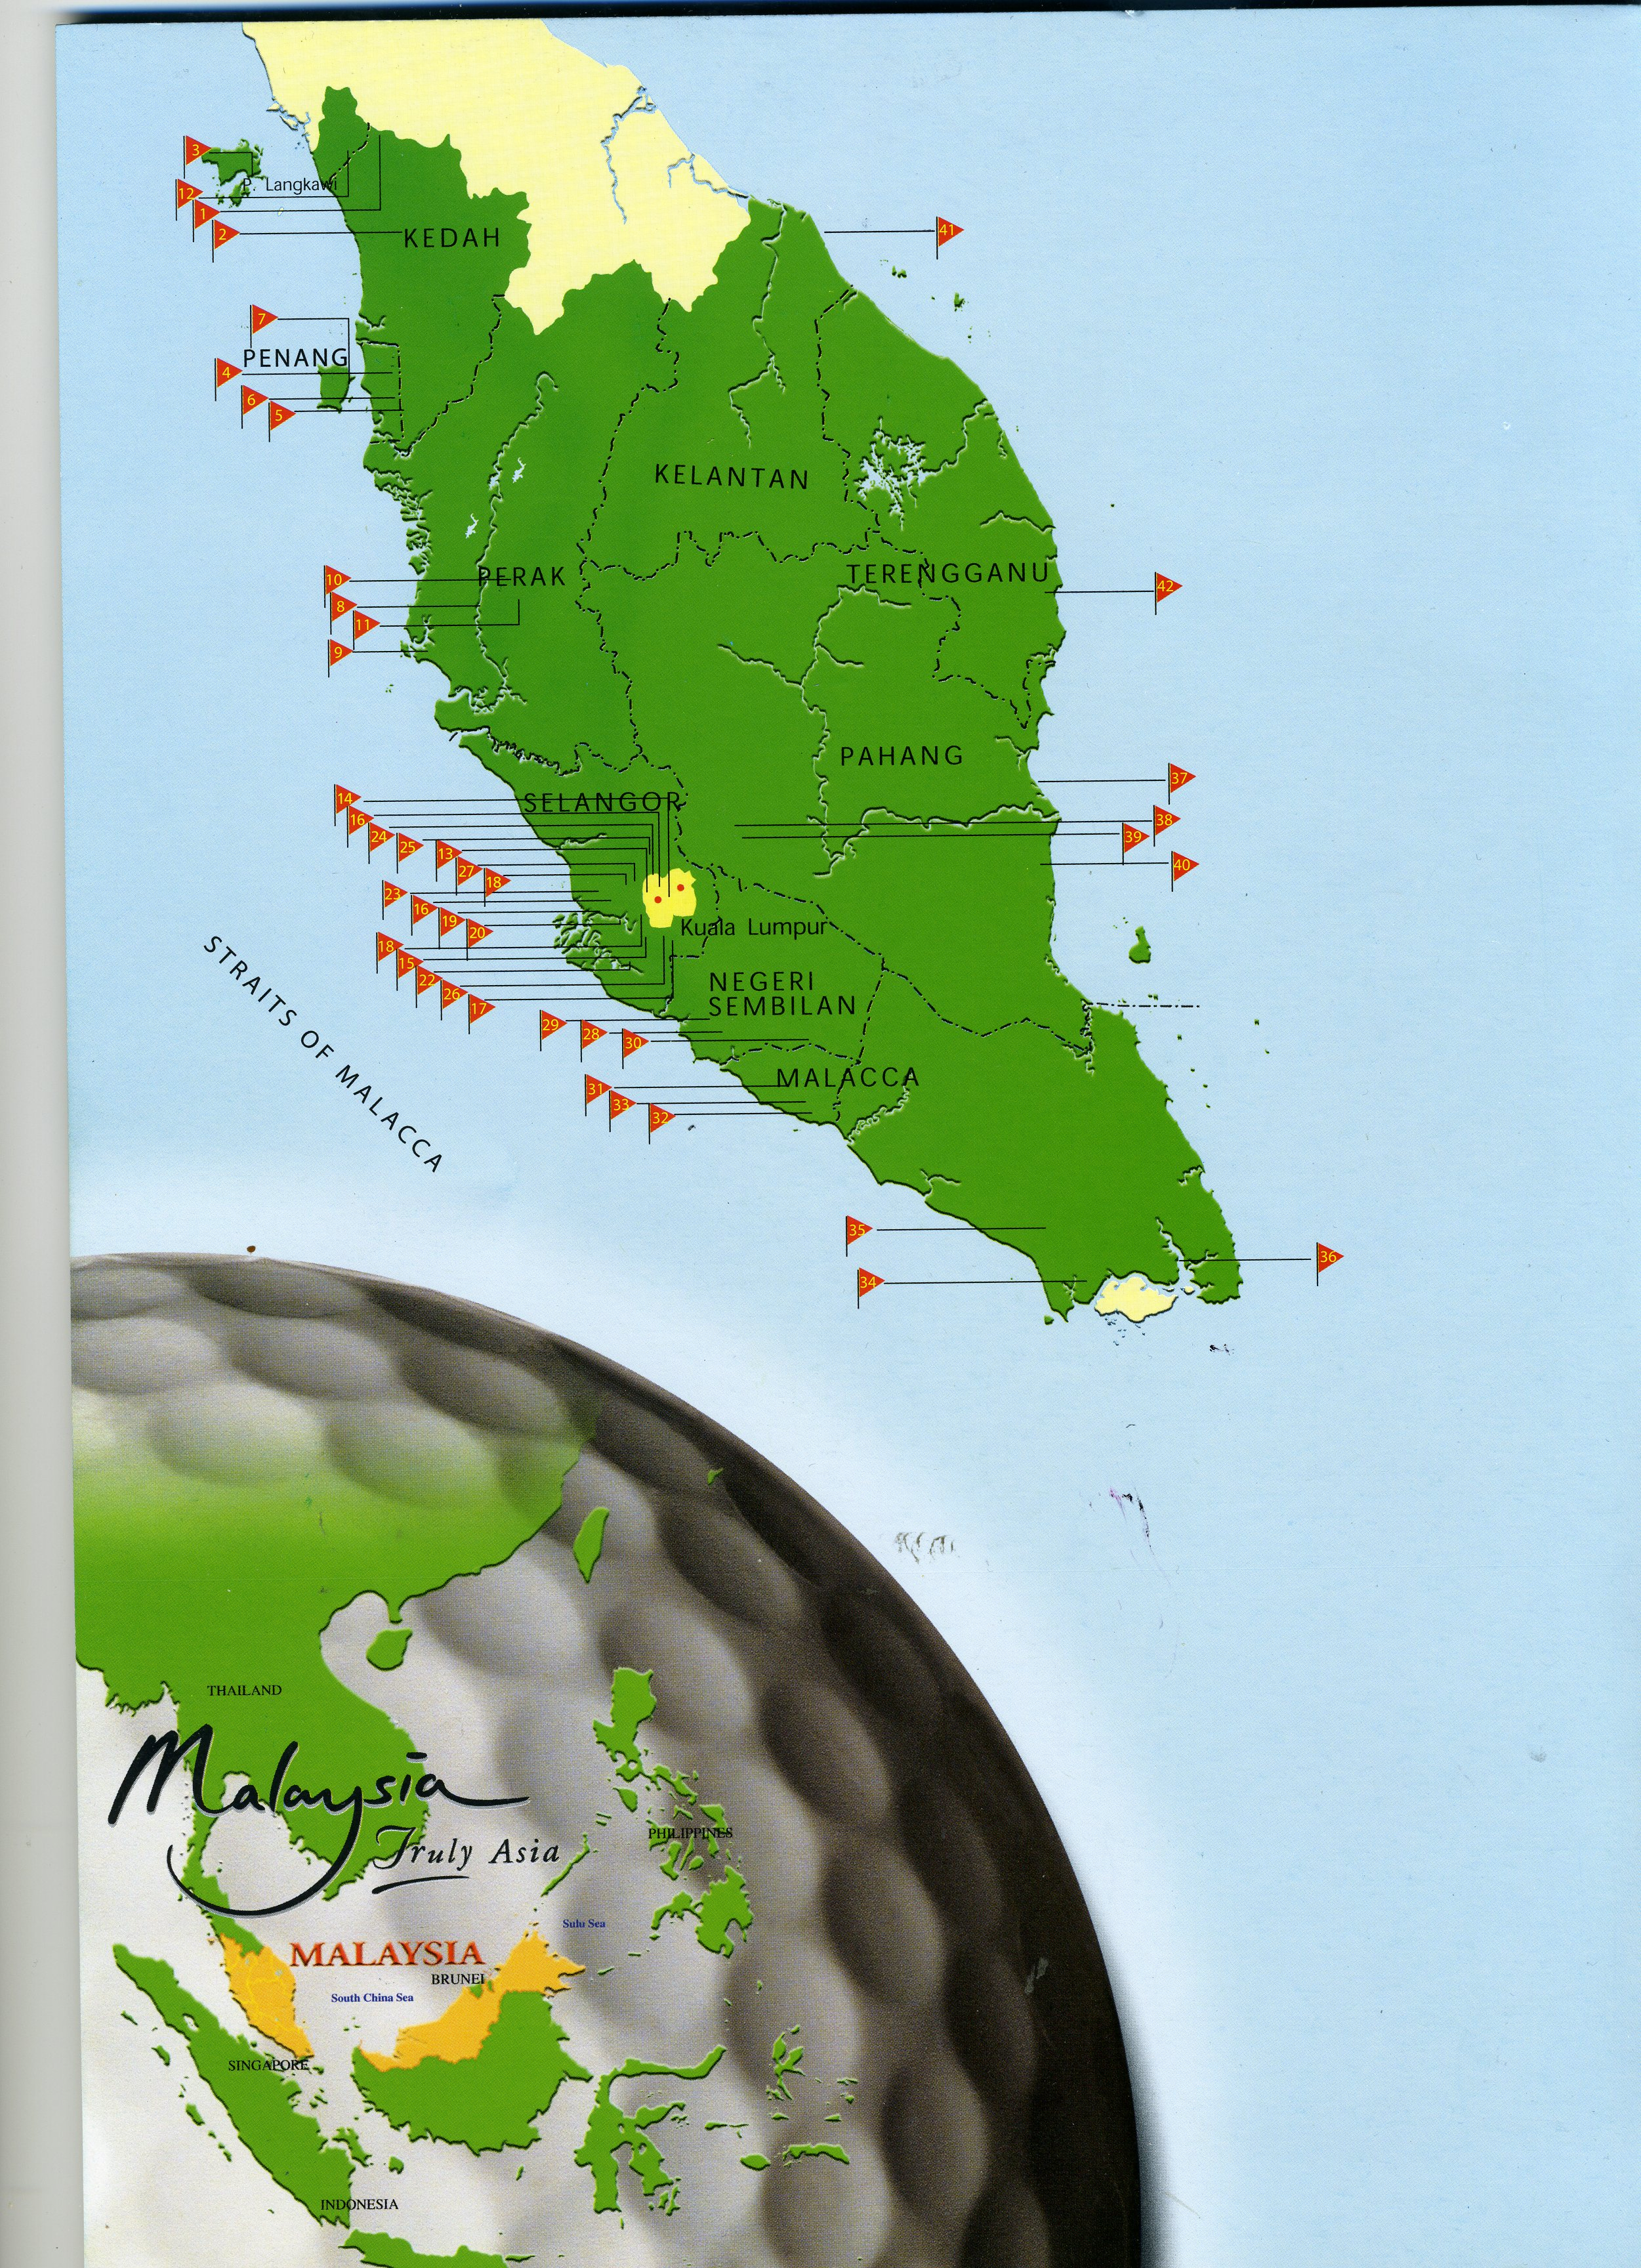 Map Of Southeast Asia Japan And Malaysia.Southeast Asia Japan Hong Kong Golf Hole In One Insurance